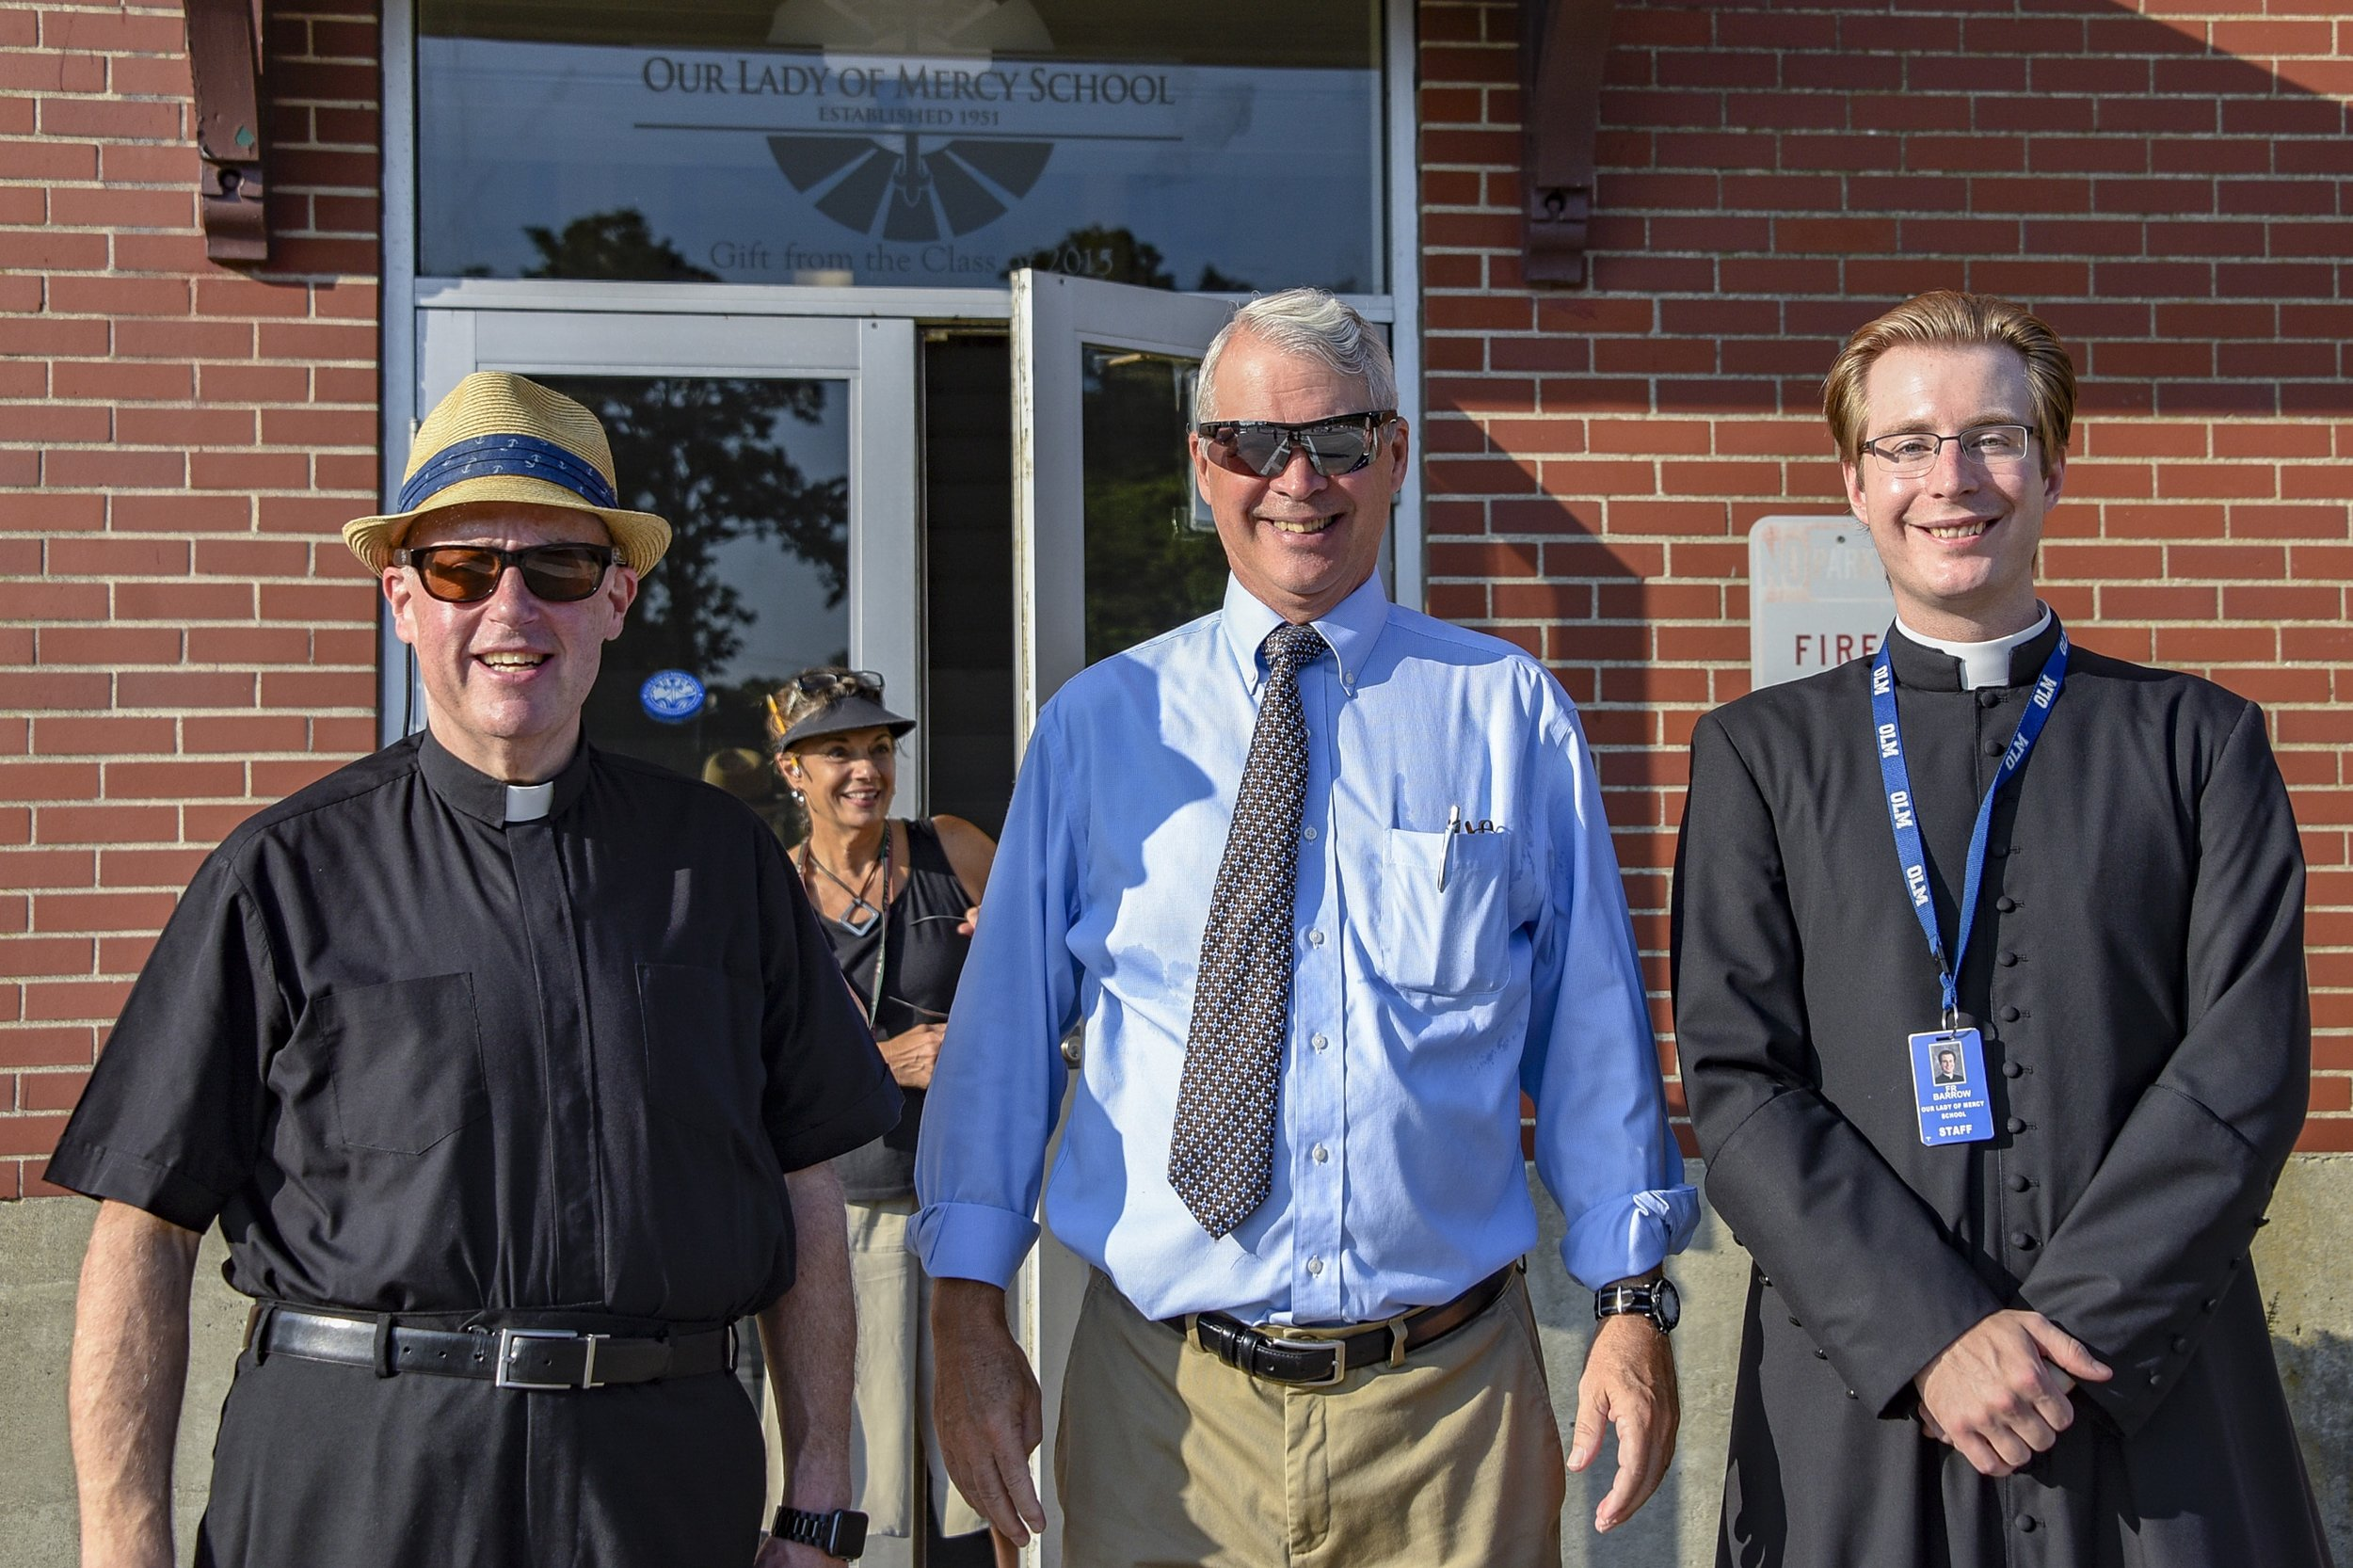 Mr. Fuller with Fr. Healey and Fr. Barrow on the First Day of School 2019!